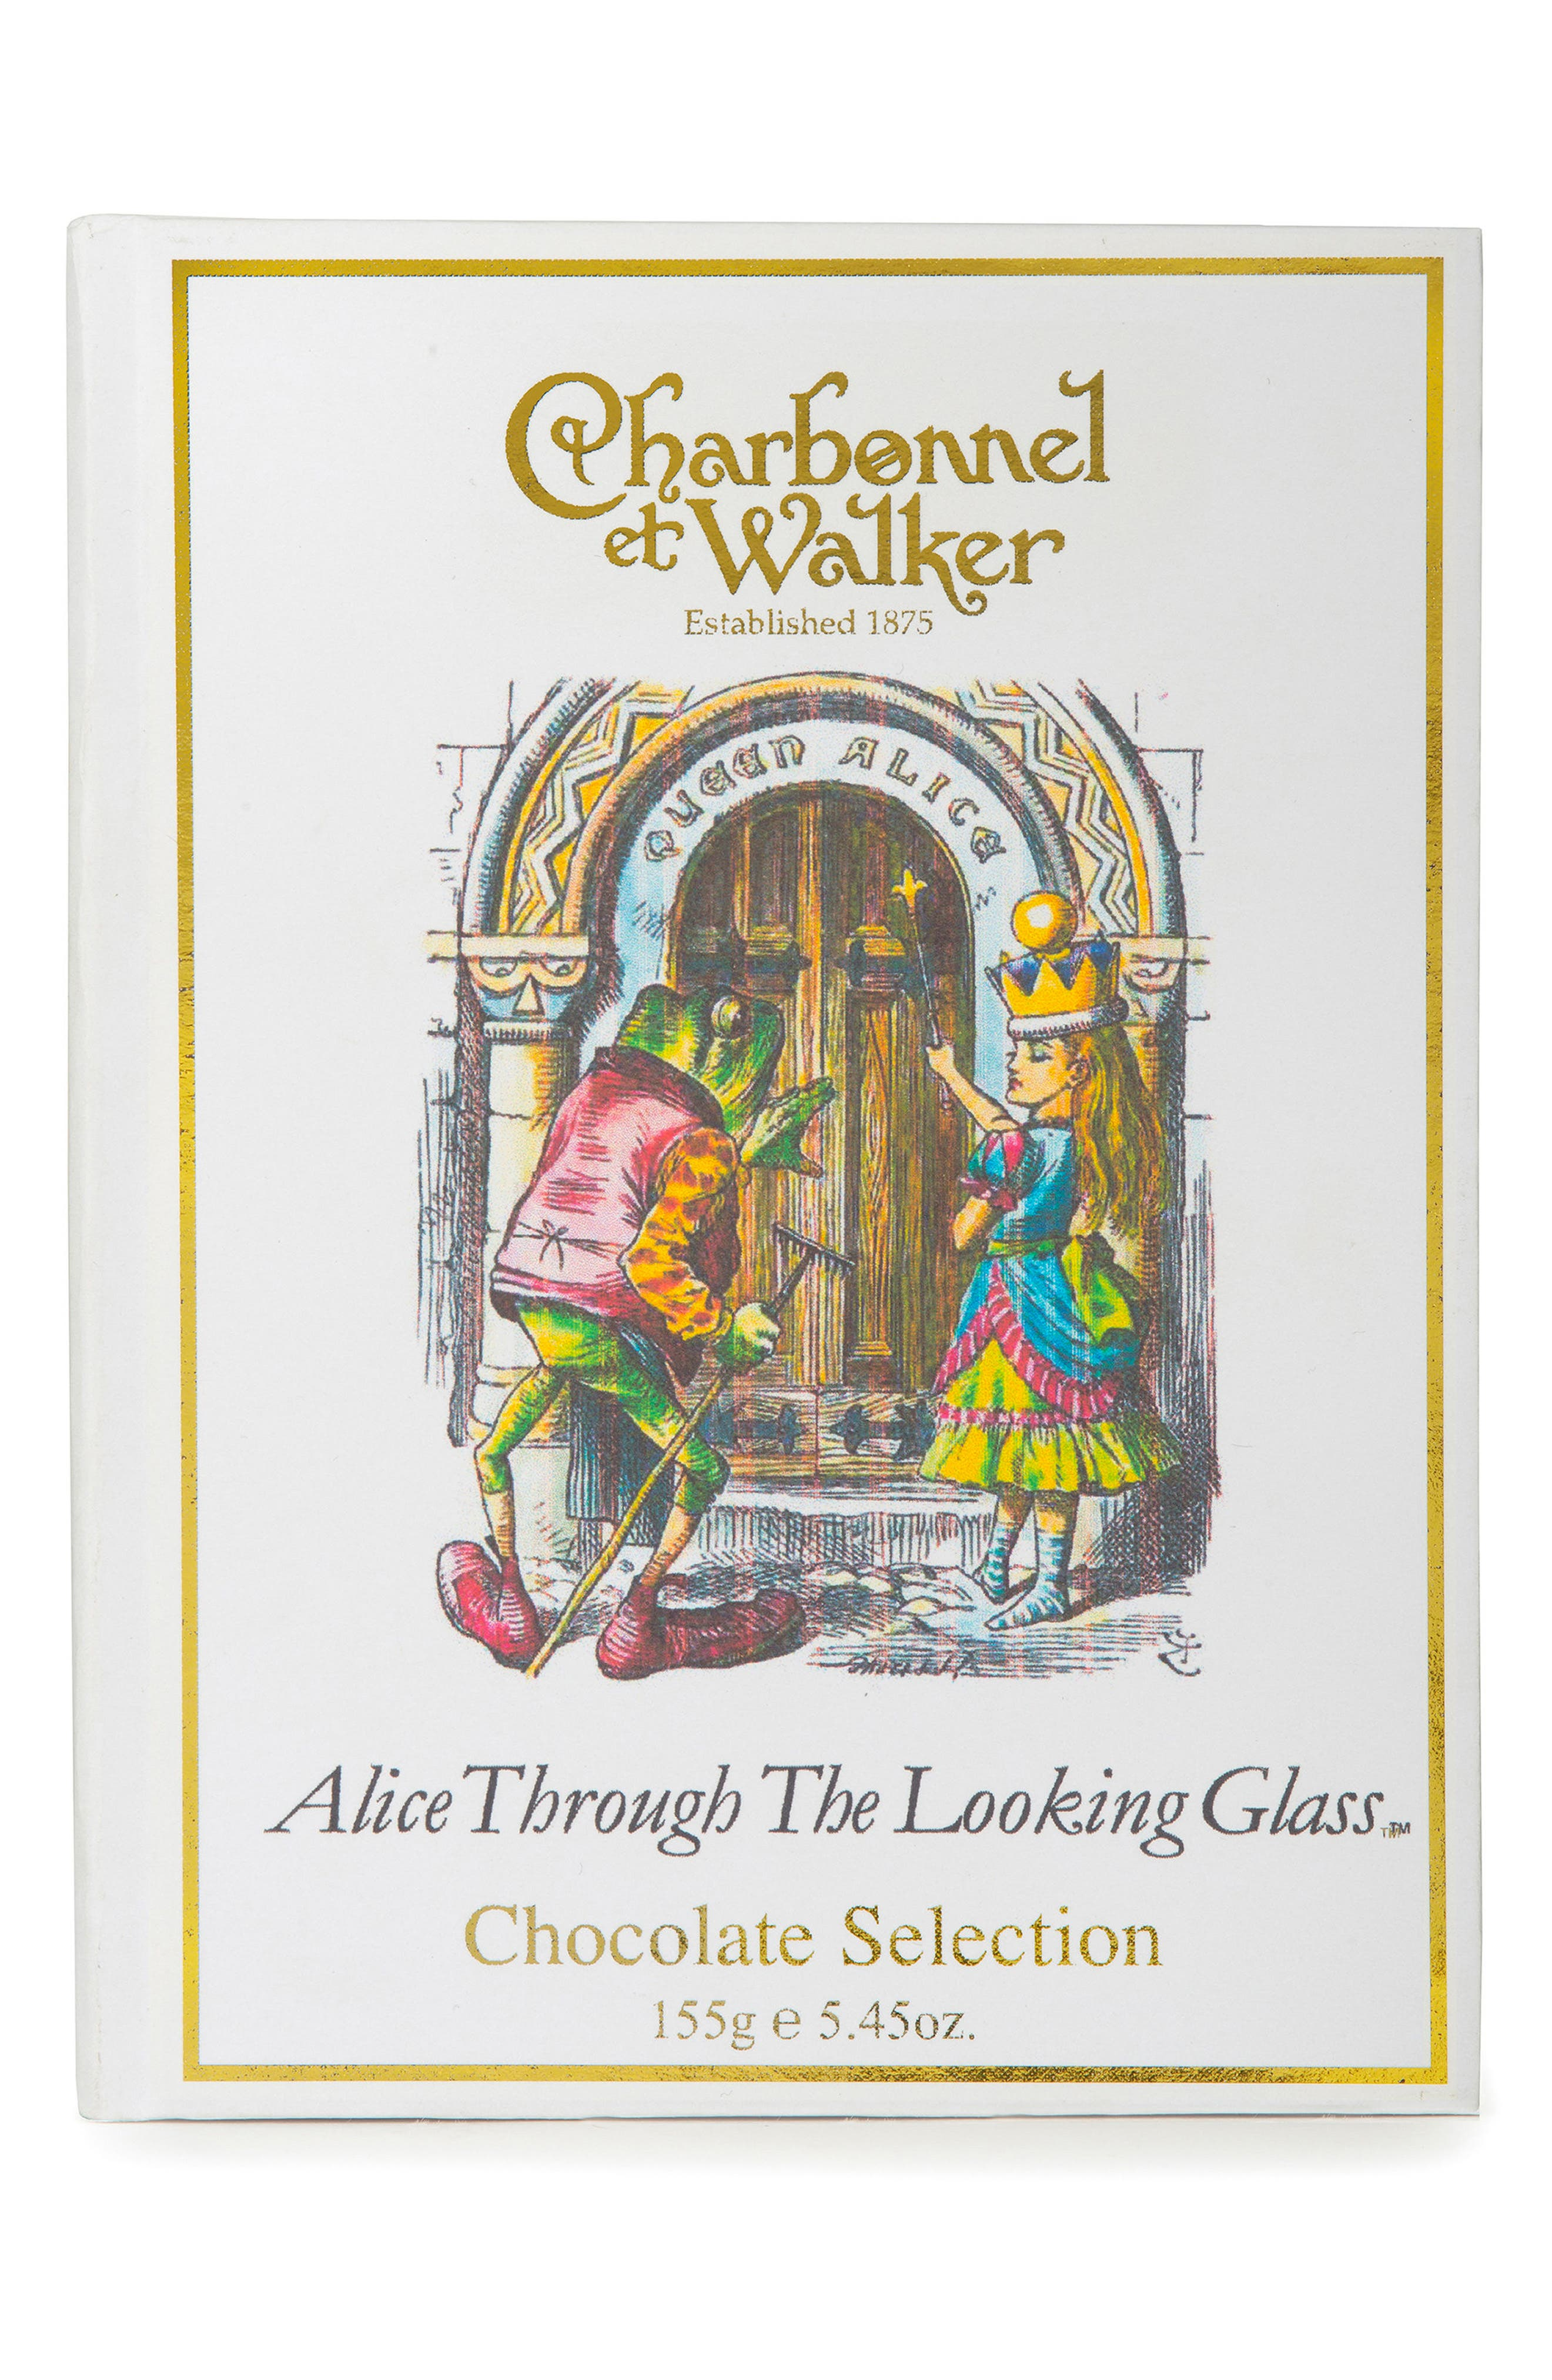 Main Image - Charbonnel et Walker Fine Chocolate Selection in Alice Through the Looking Glass Gift Box